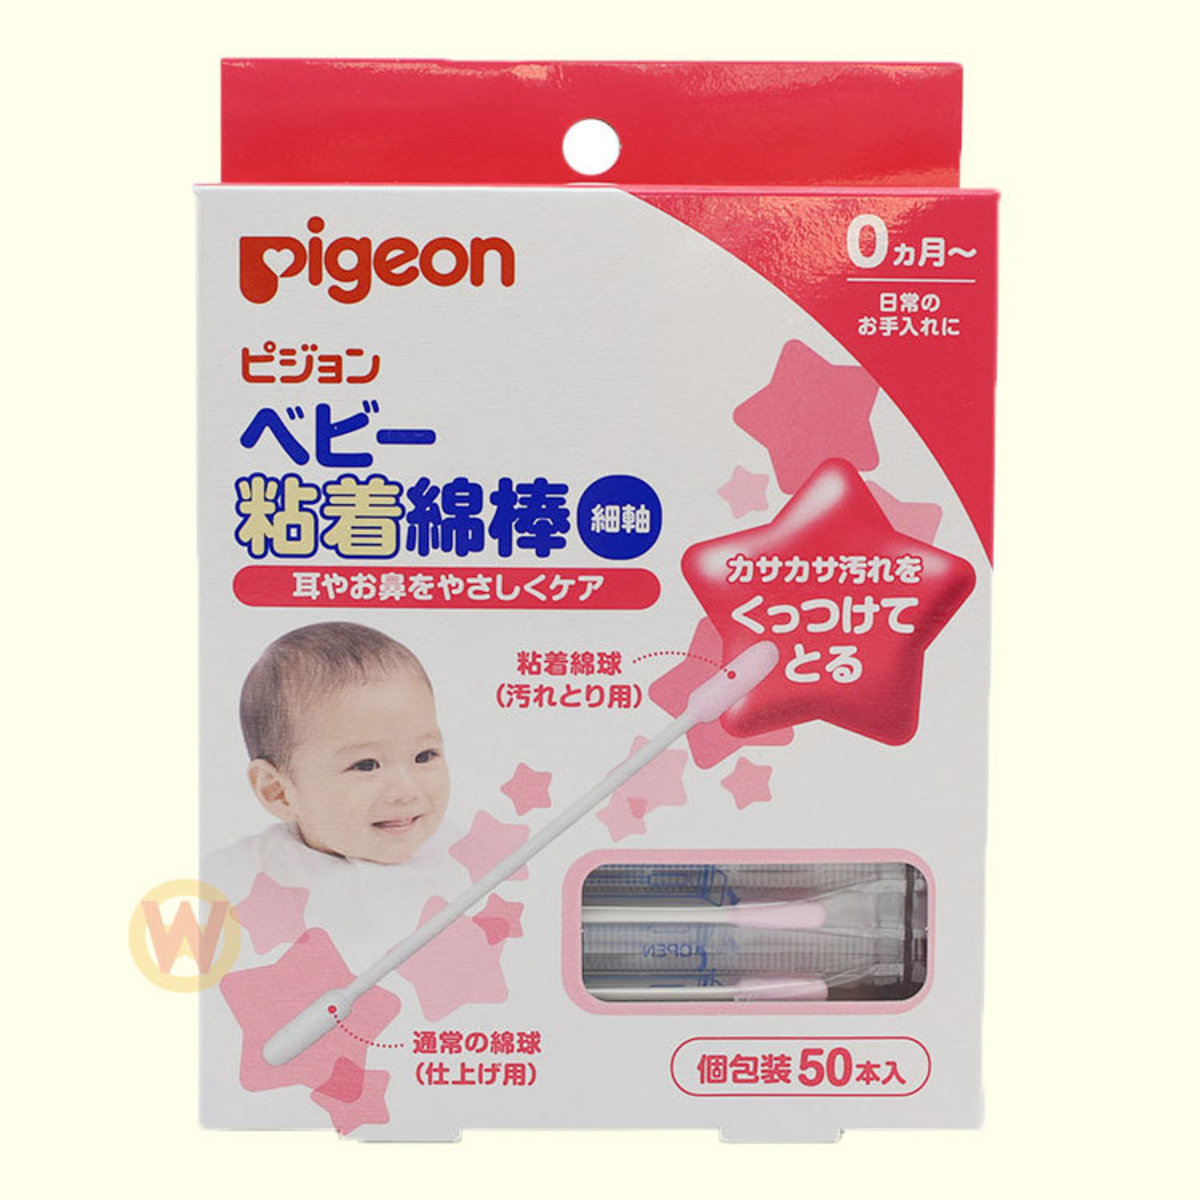 PIGEON COTTON BUDS - STICKY TYPE 50PCS [Parallel Import Product]